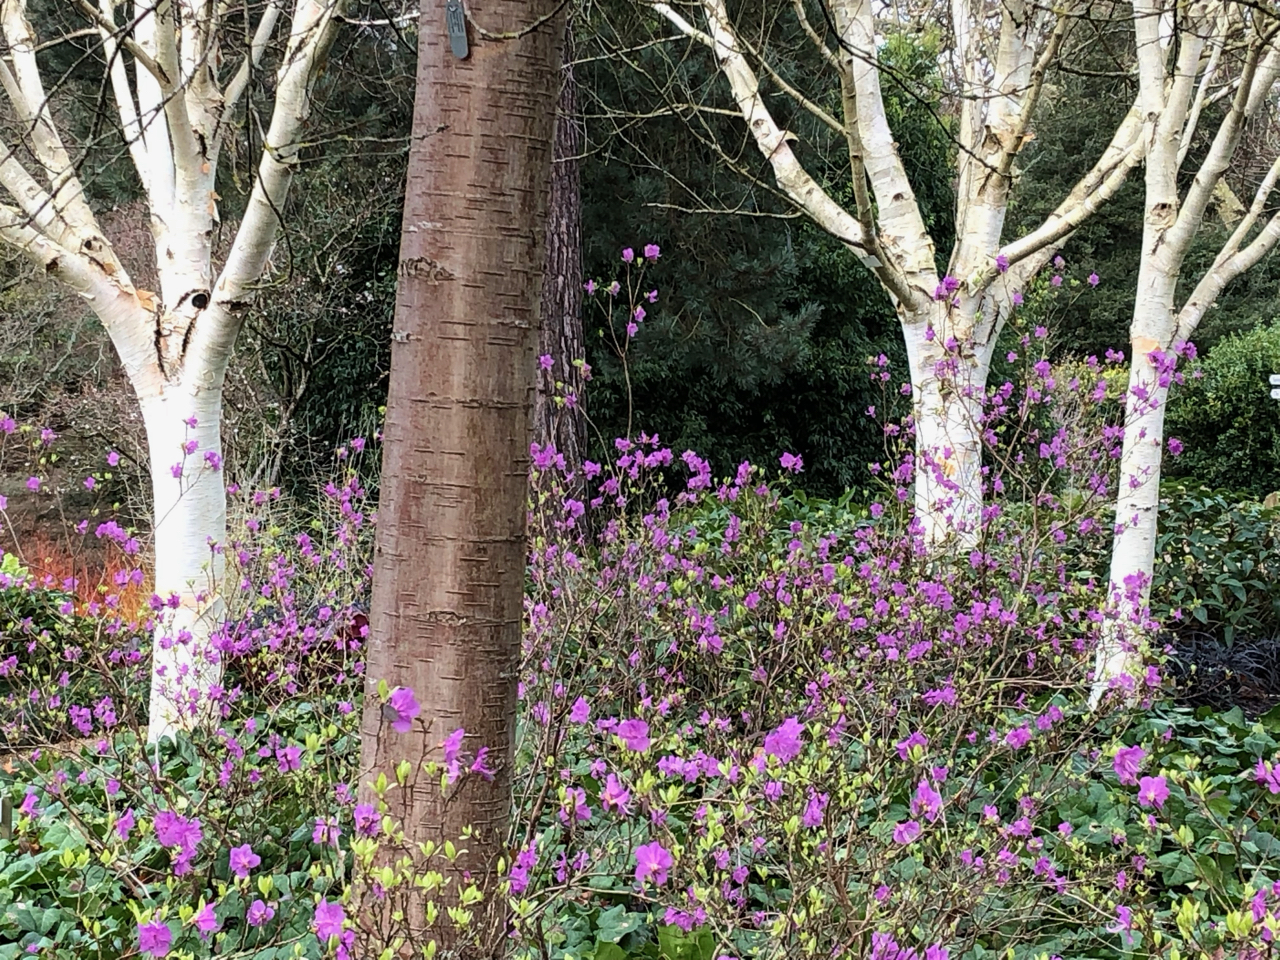 Himalayan birches and winter-flowering rhododendron